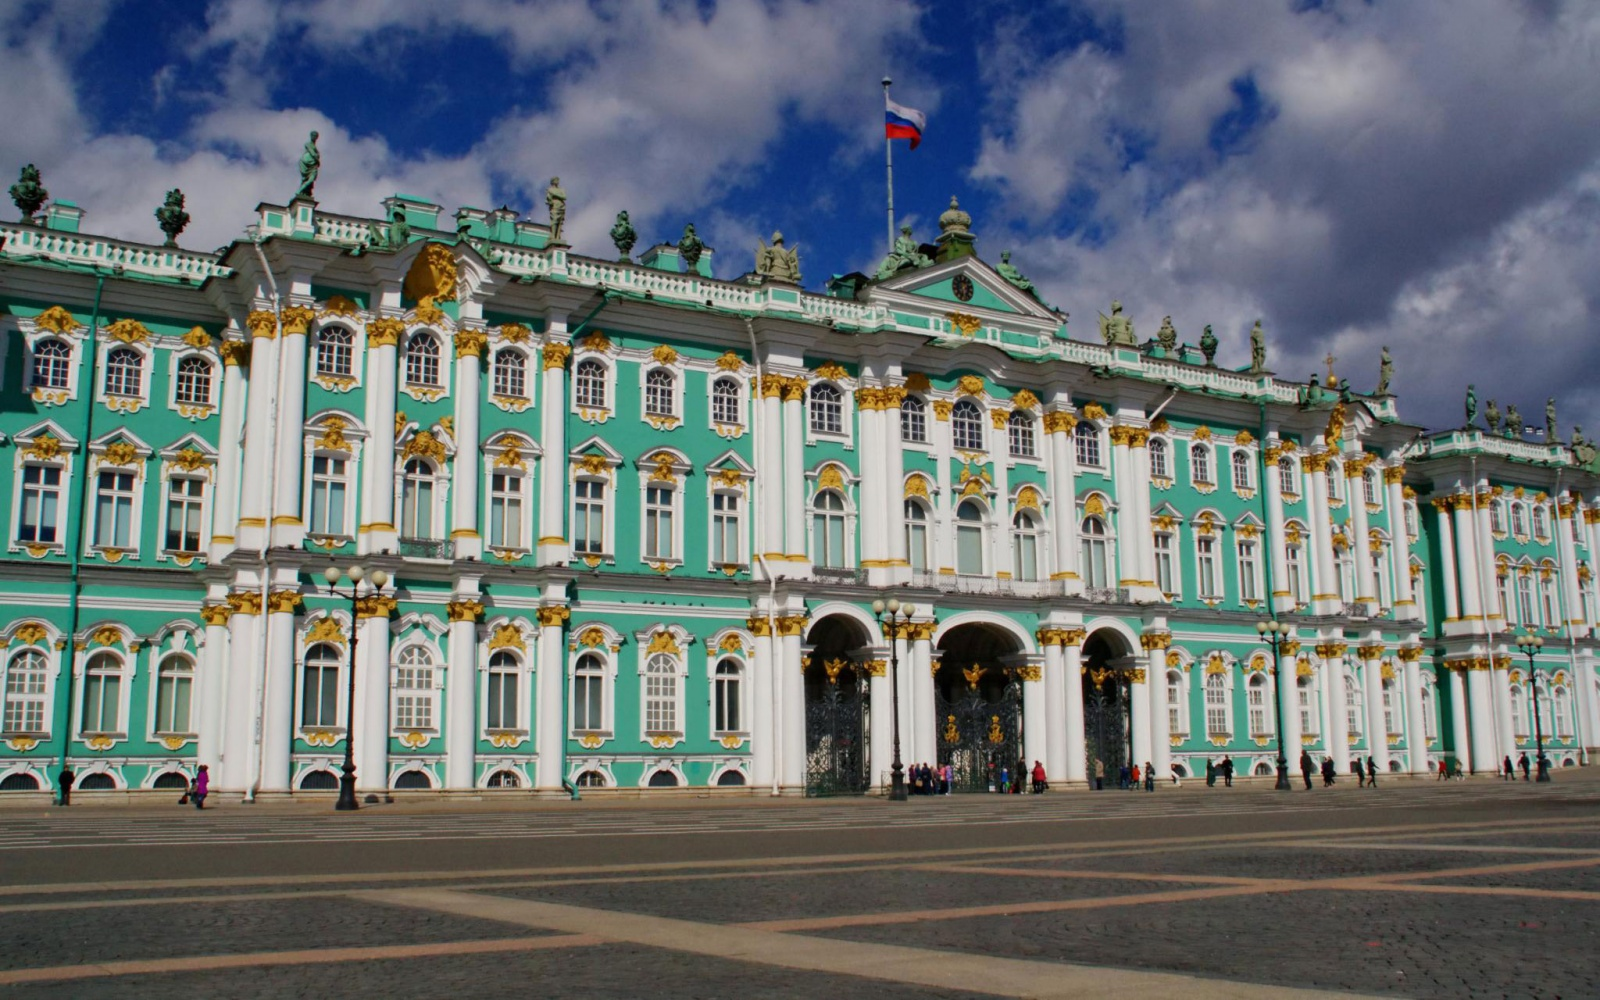 No. 6 The Winter Palace (State Hermitage Museum), St. Petersburg, Russia